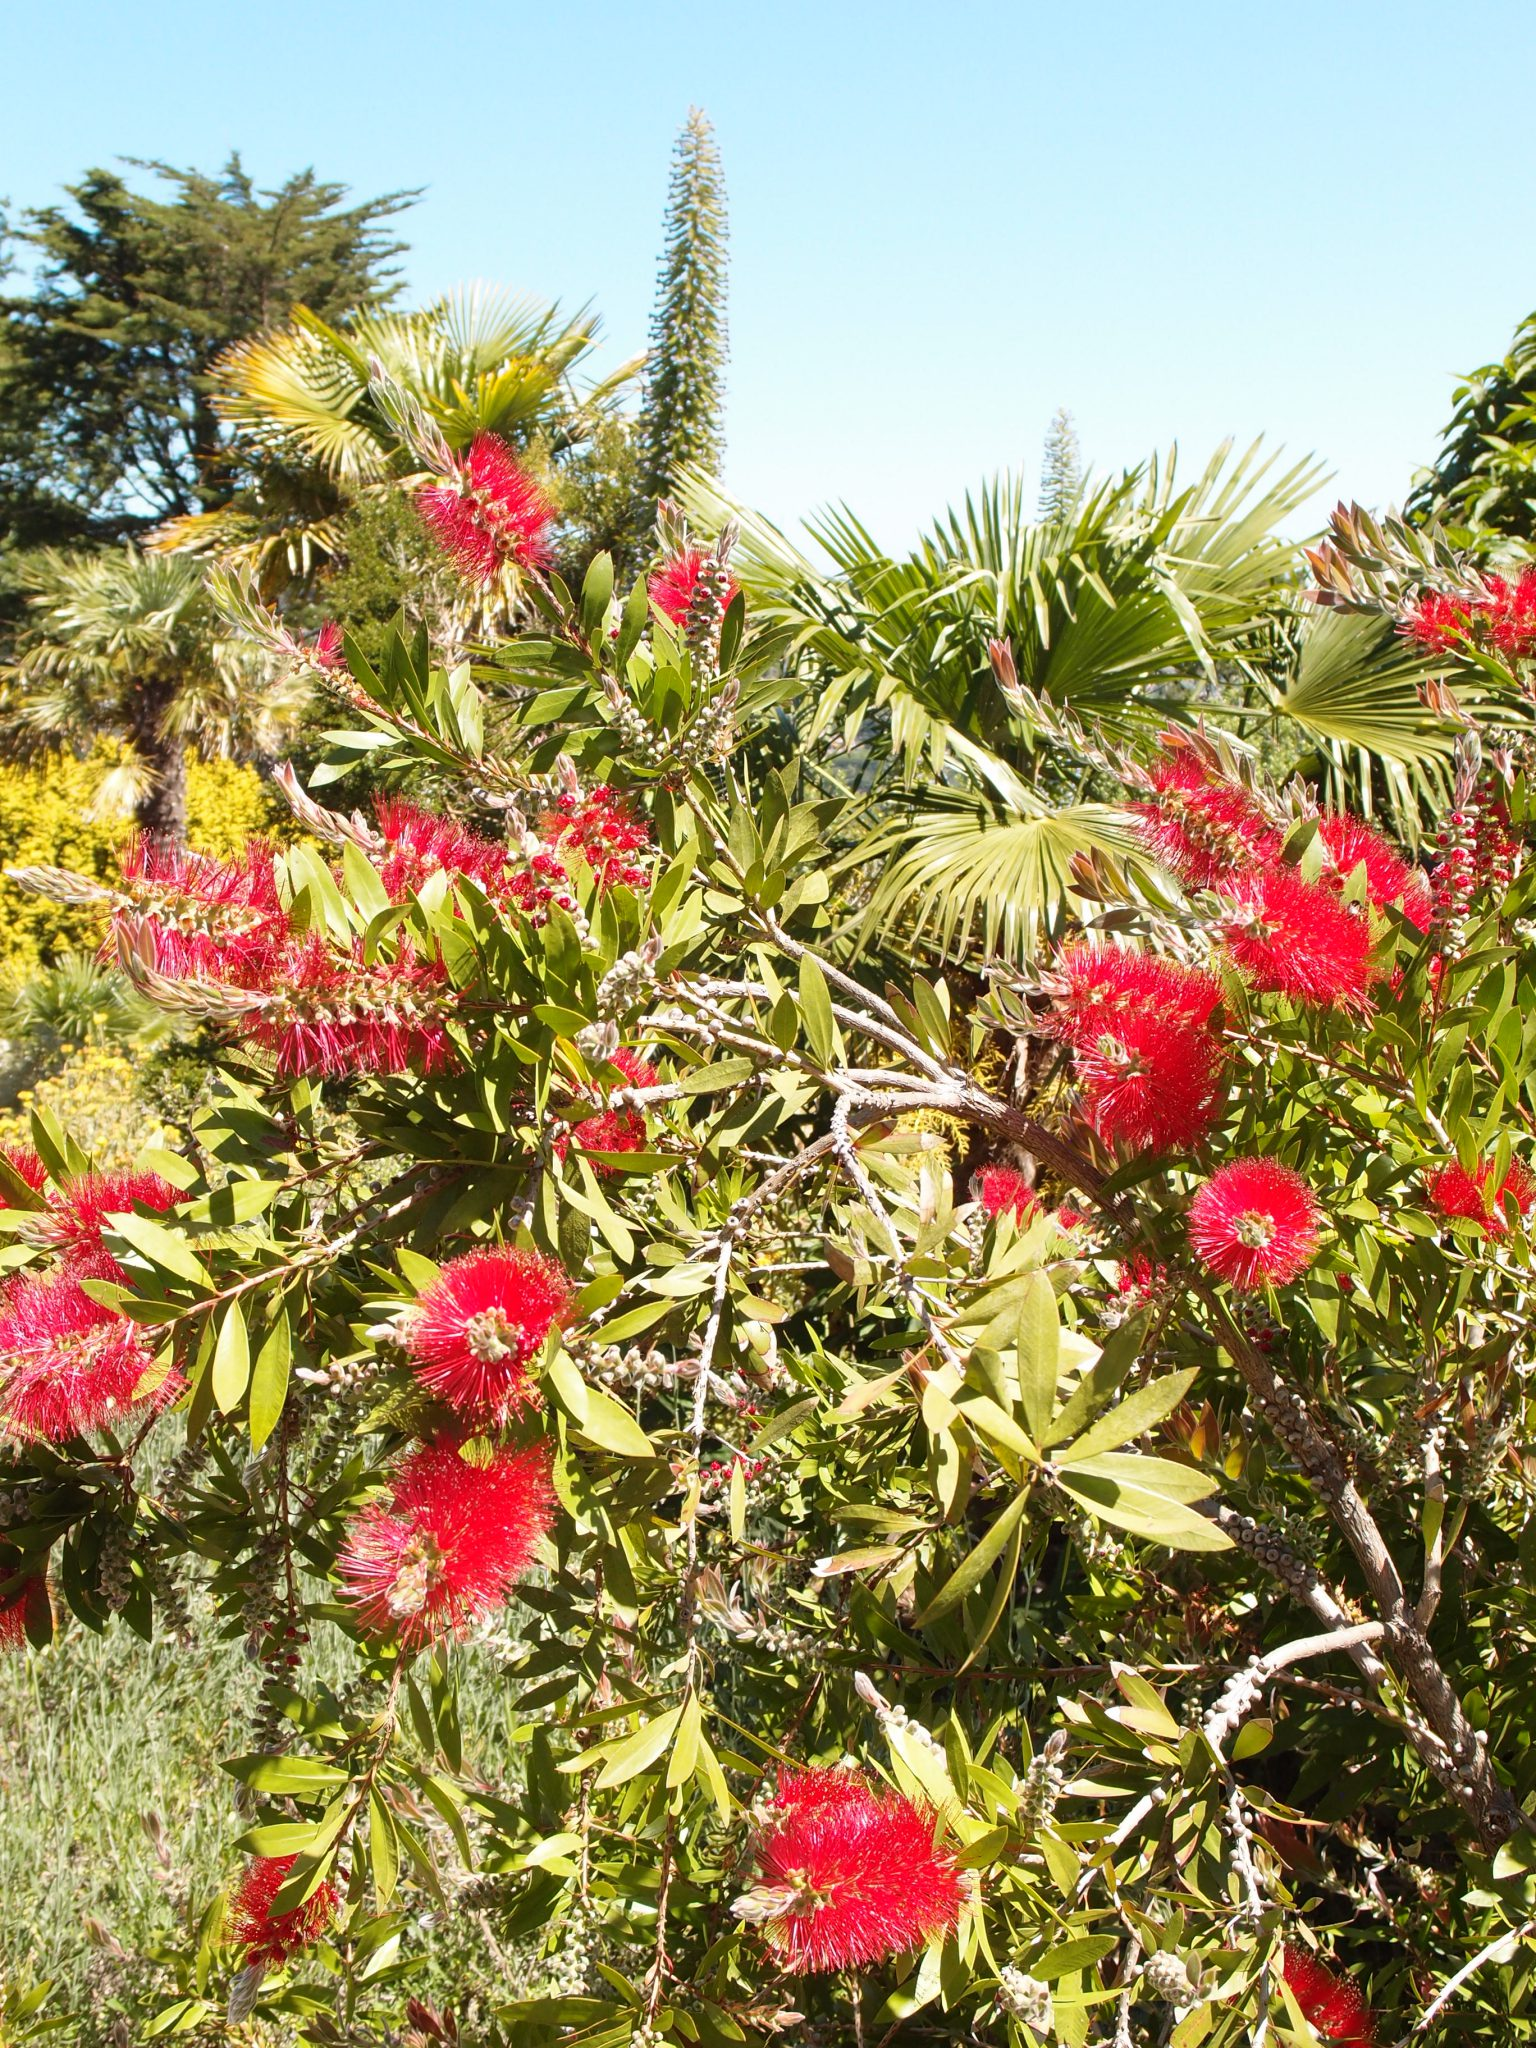 In the Palm Gardens: a thicket of Crimson bottlebrush ( Callistemon citrinus)